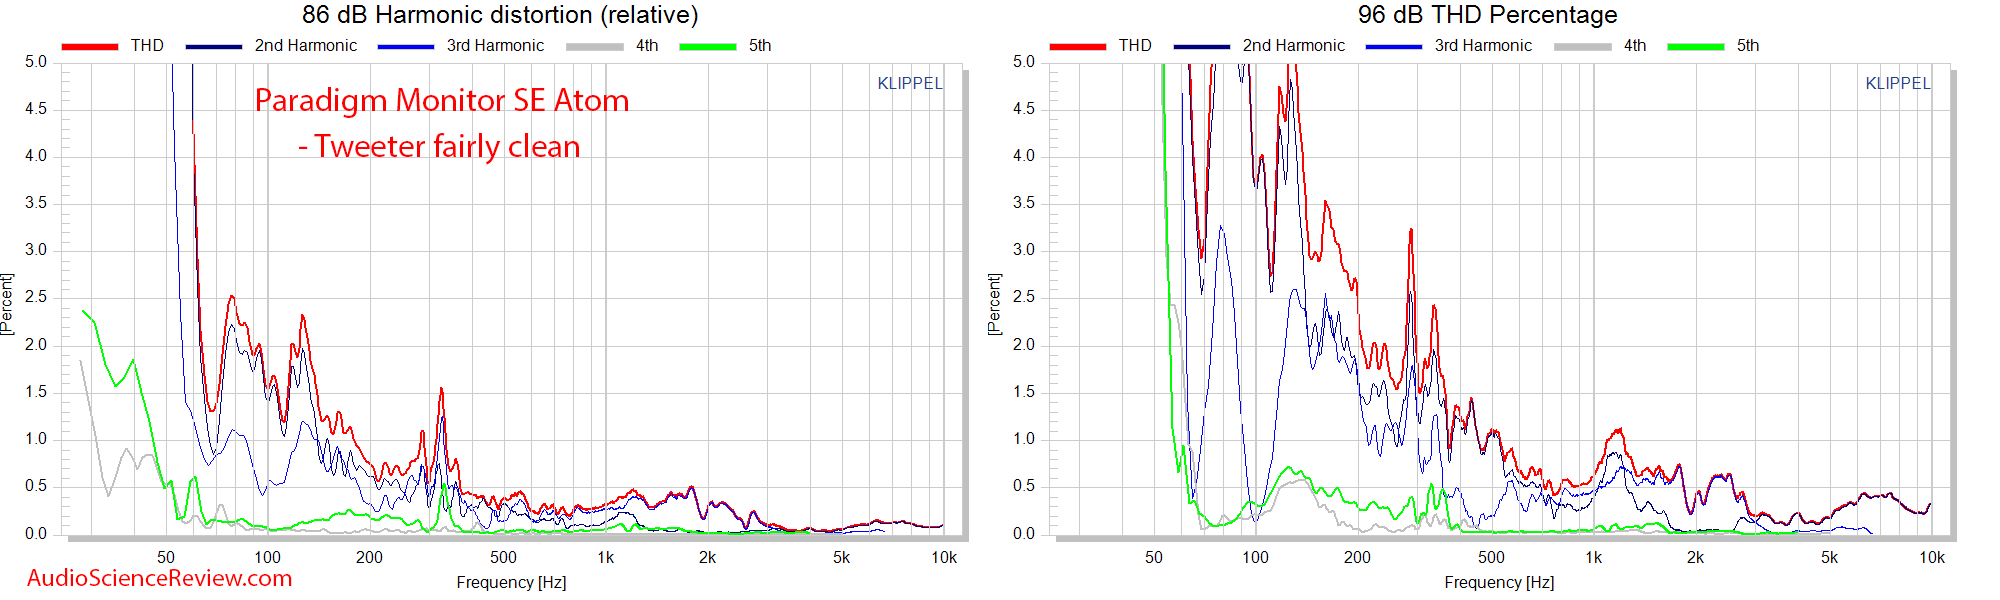 Paradigm SE Monitor Atom Measurements relative THD distortion.png